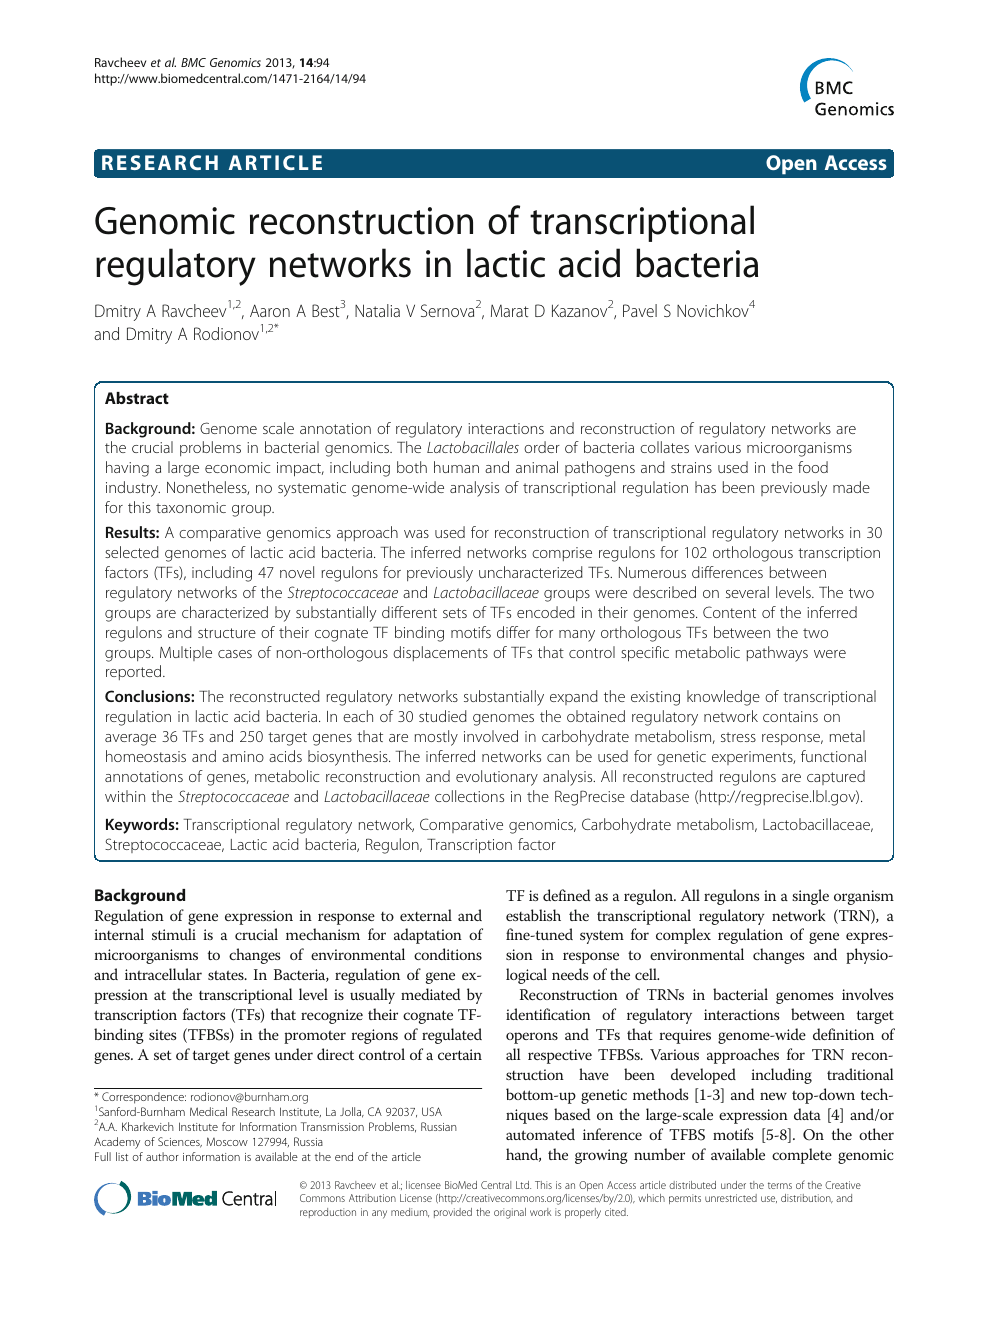 Genomic reconstruction of transcriptional regulatory